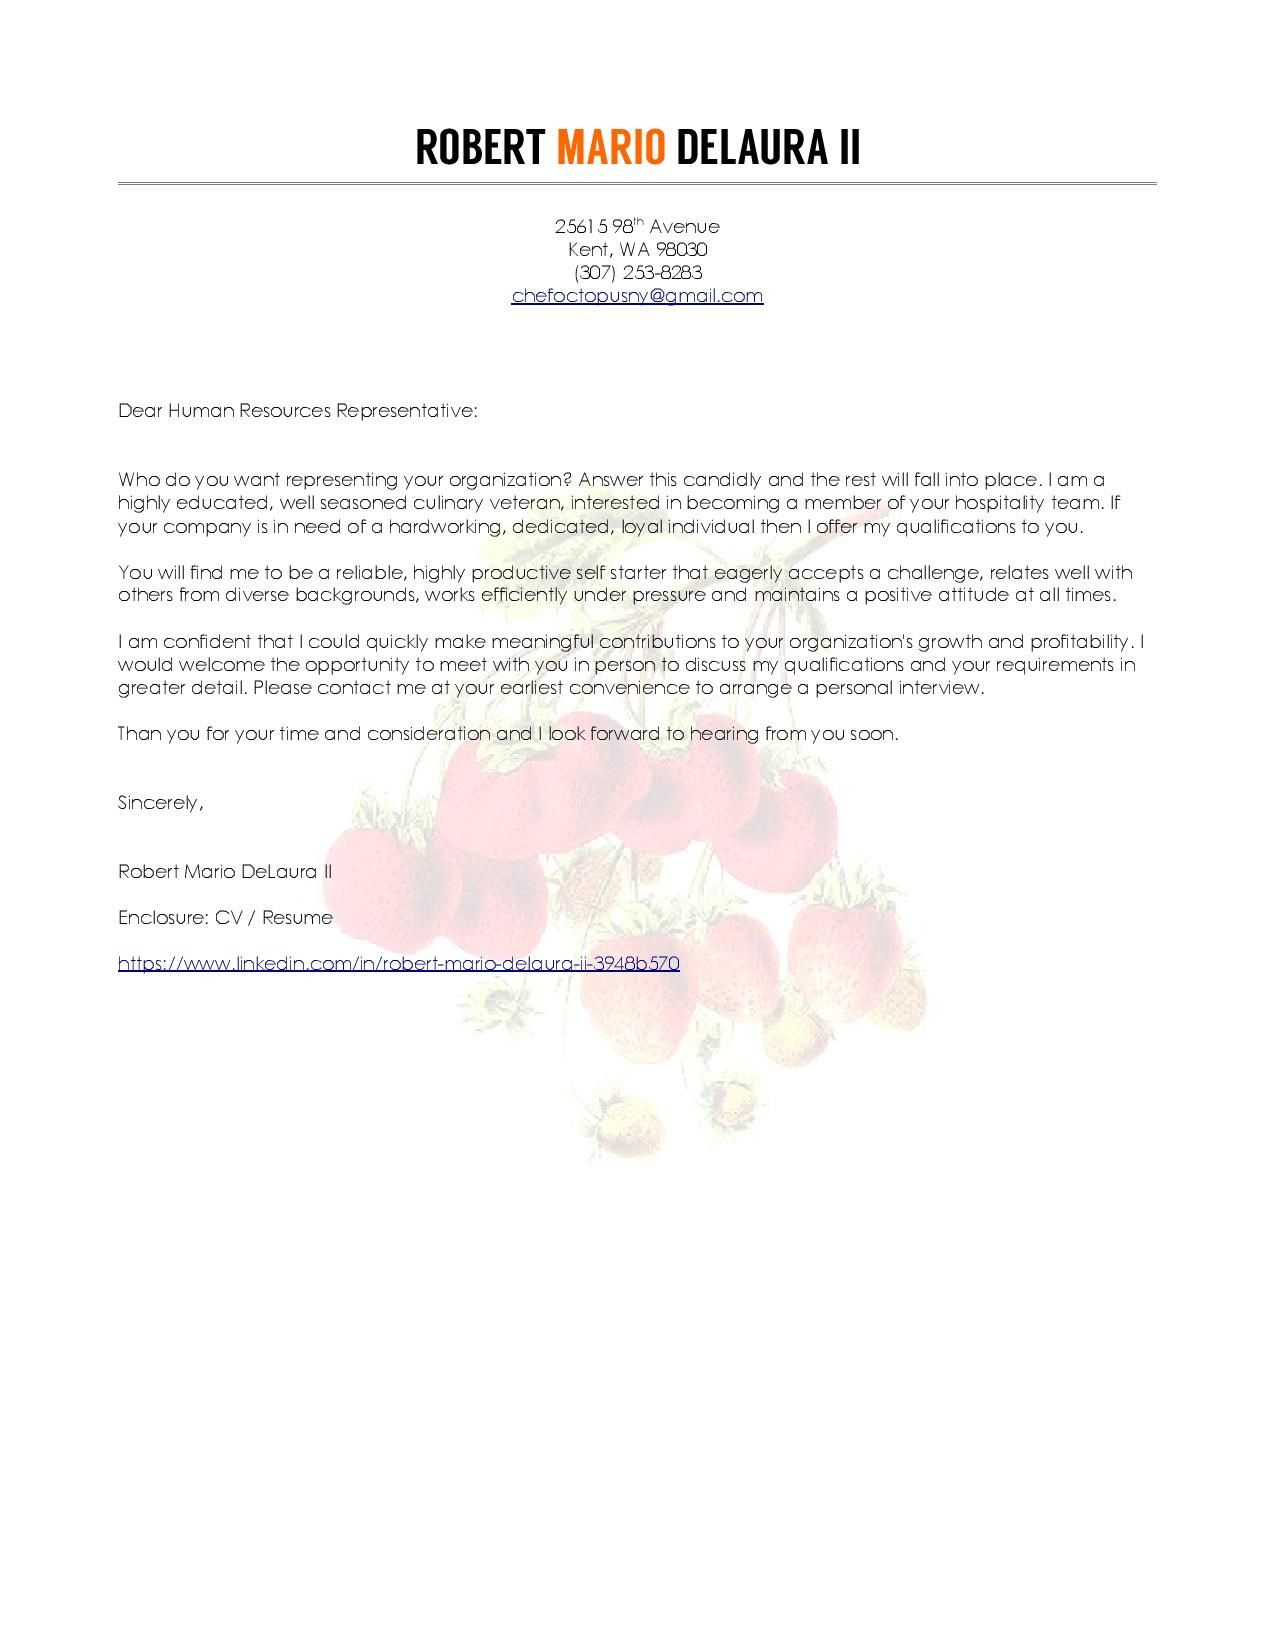 chef cover letter (With images) | Creative resume